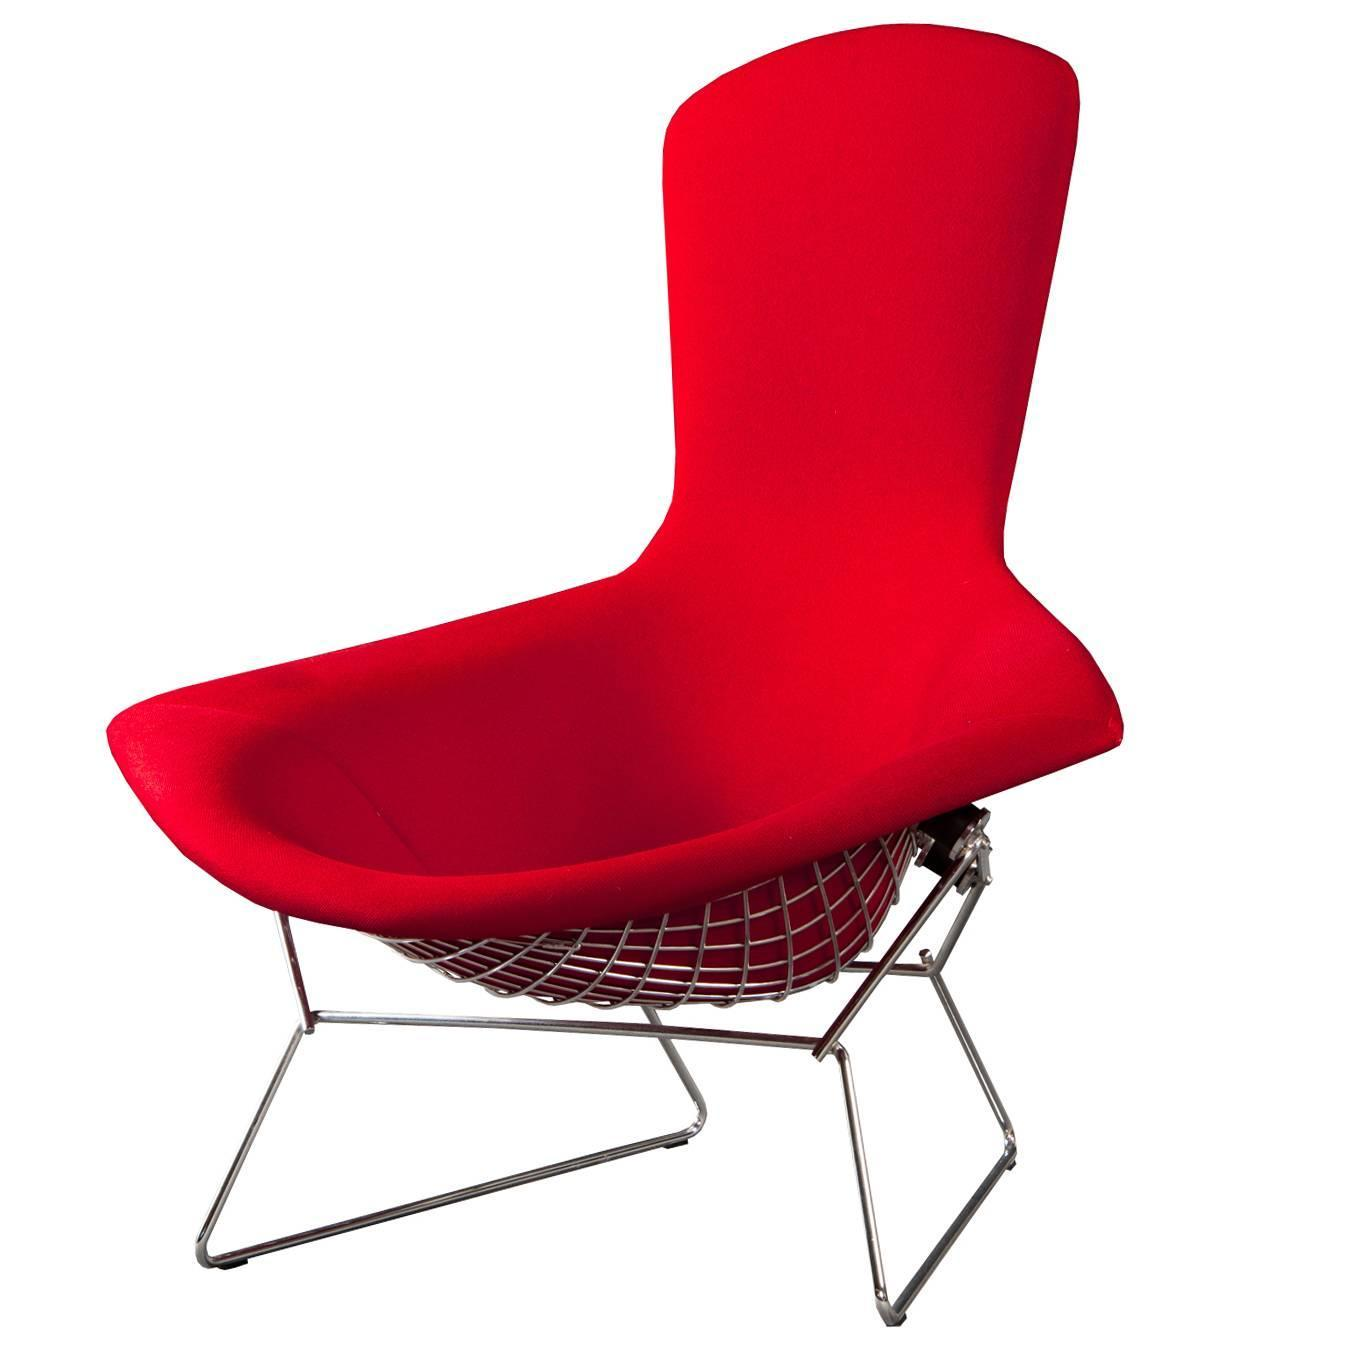 Harry Bertoia Chair Bird Chair By Harry Bertoia For Sale At 1stdibs